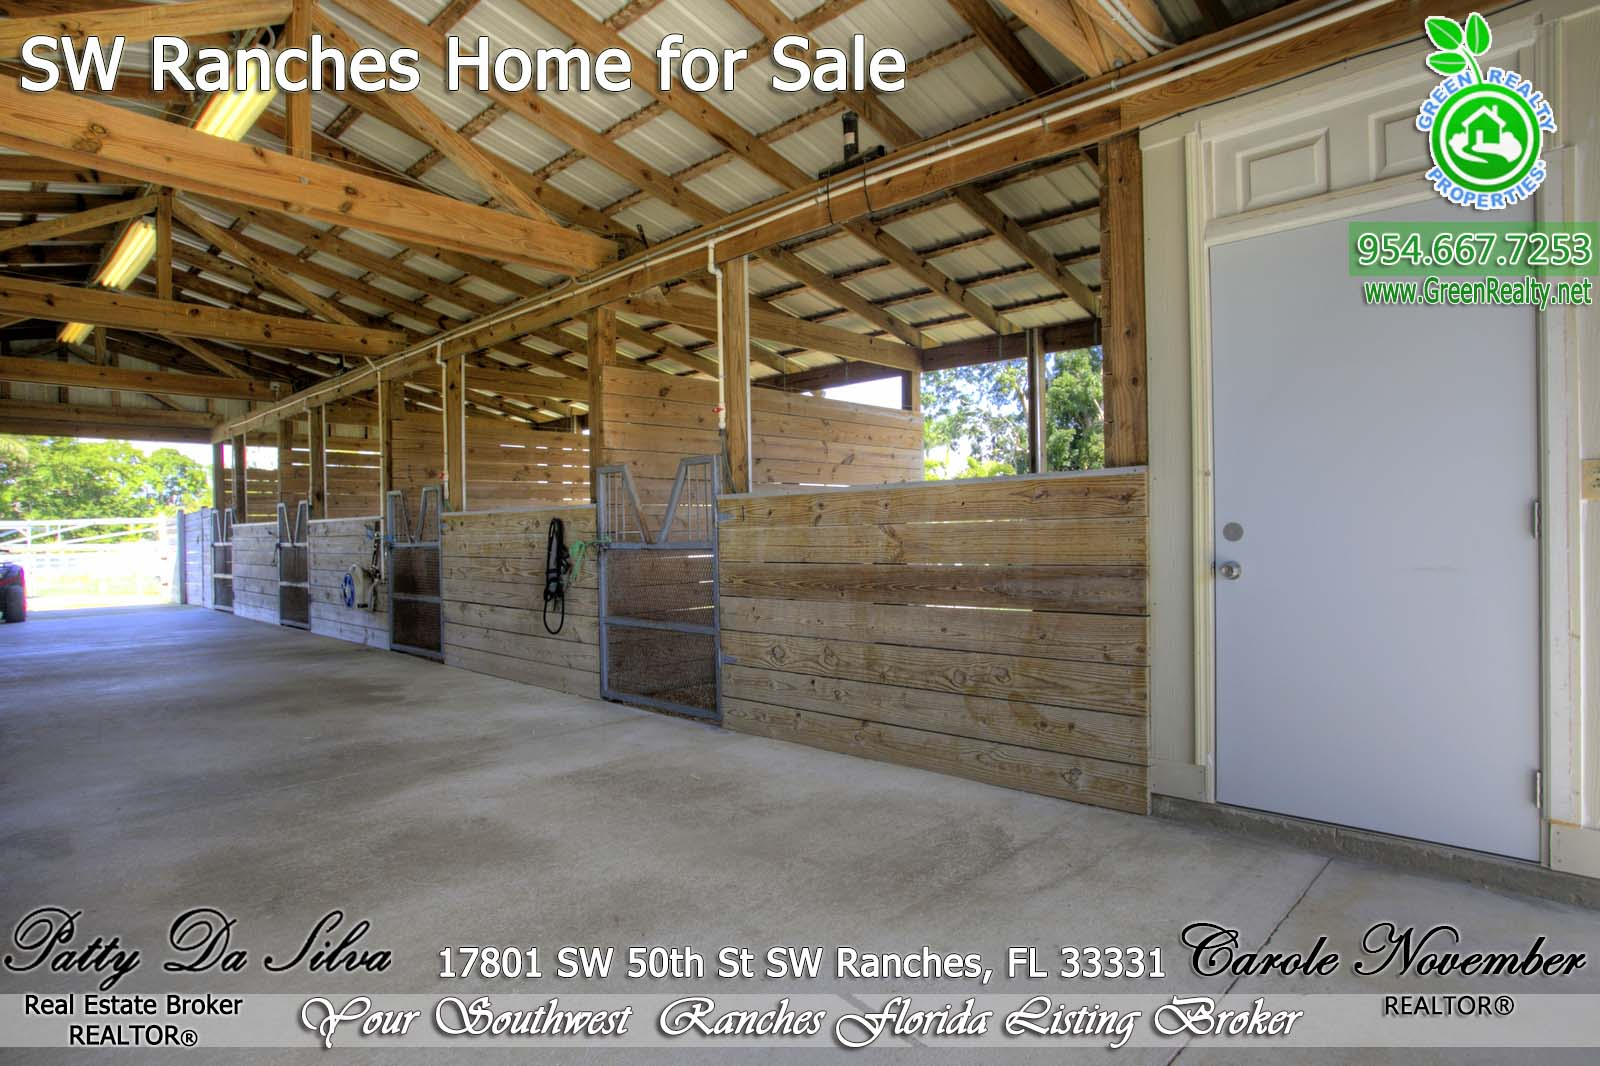 42 Equestrian Southwest Ranches Homes (3)